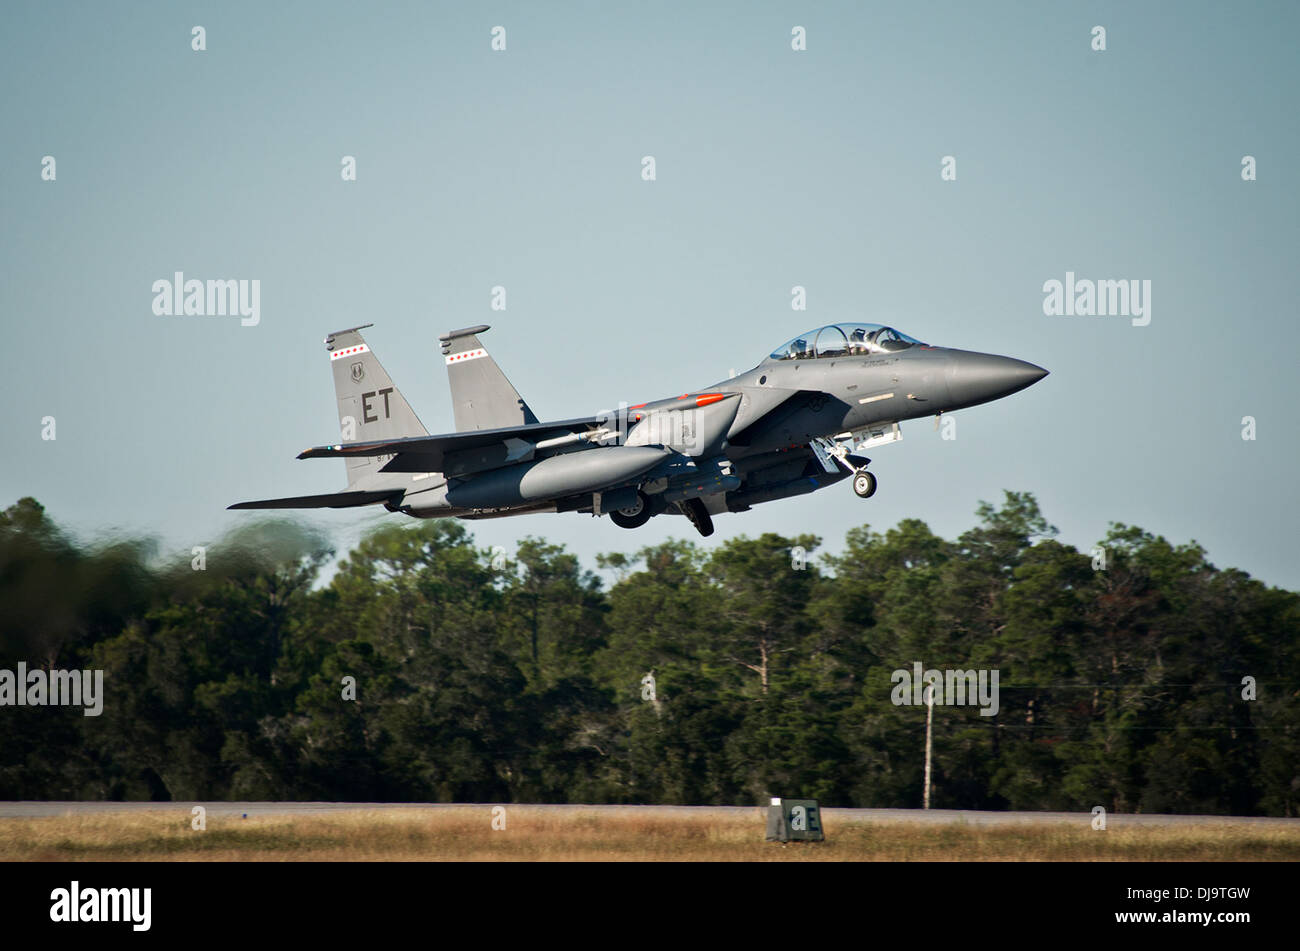 An F-15 from the 40th Flight Test Squadron takes off for a training sortie from Eglin Air Force Base, Fla. The 40th FTS is responsible for developmental flight testing for F-15s, F-16s and A-10s for the 96th Test Wing. - Stock Image